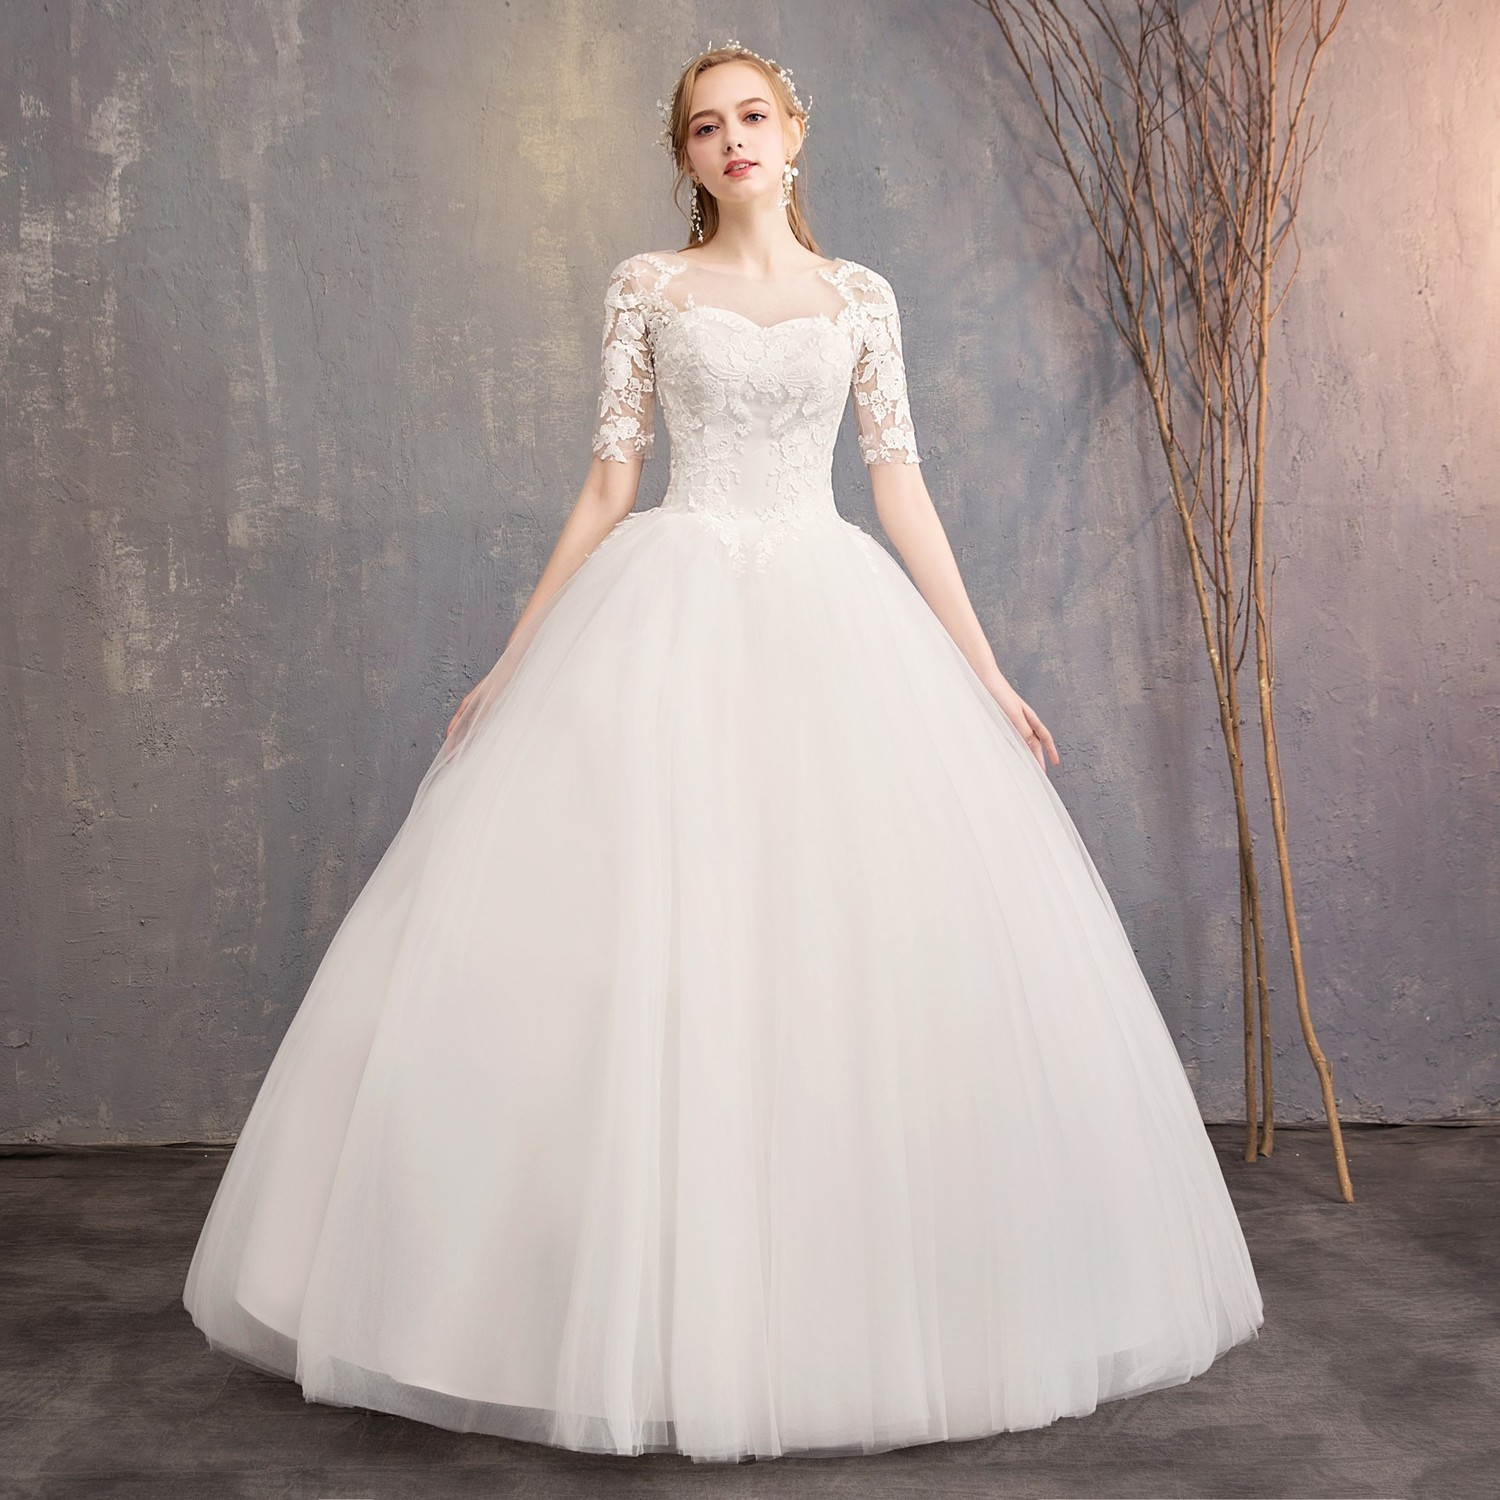 White Wedding Dresses Ball Gown Sweetheart Lace Up Appliques Tulle Elegant Formal Wedding Gowns For Bride Vestido De Noiva 2020